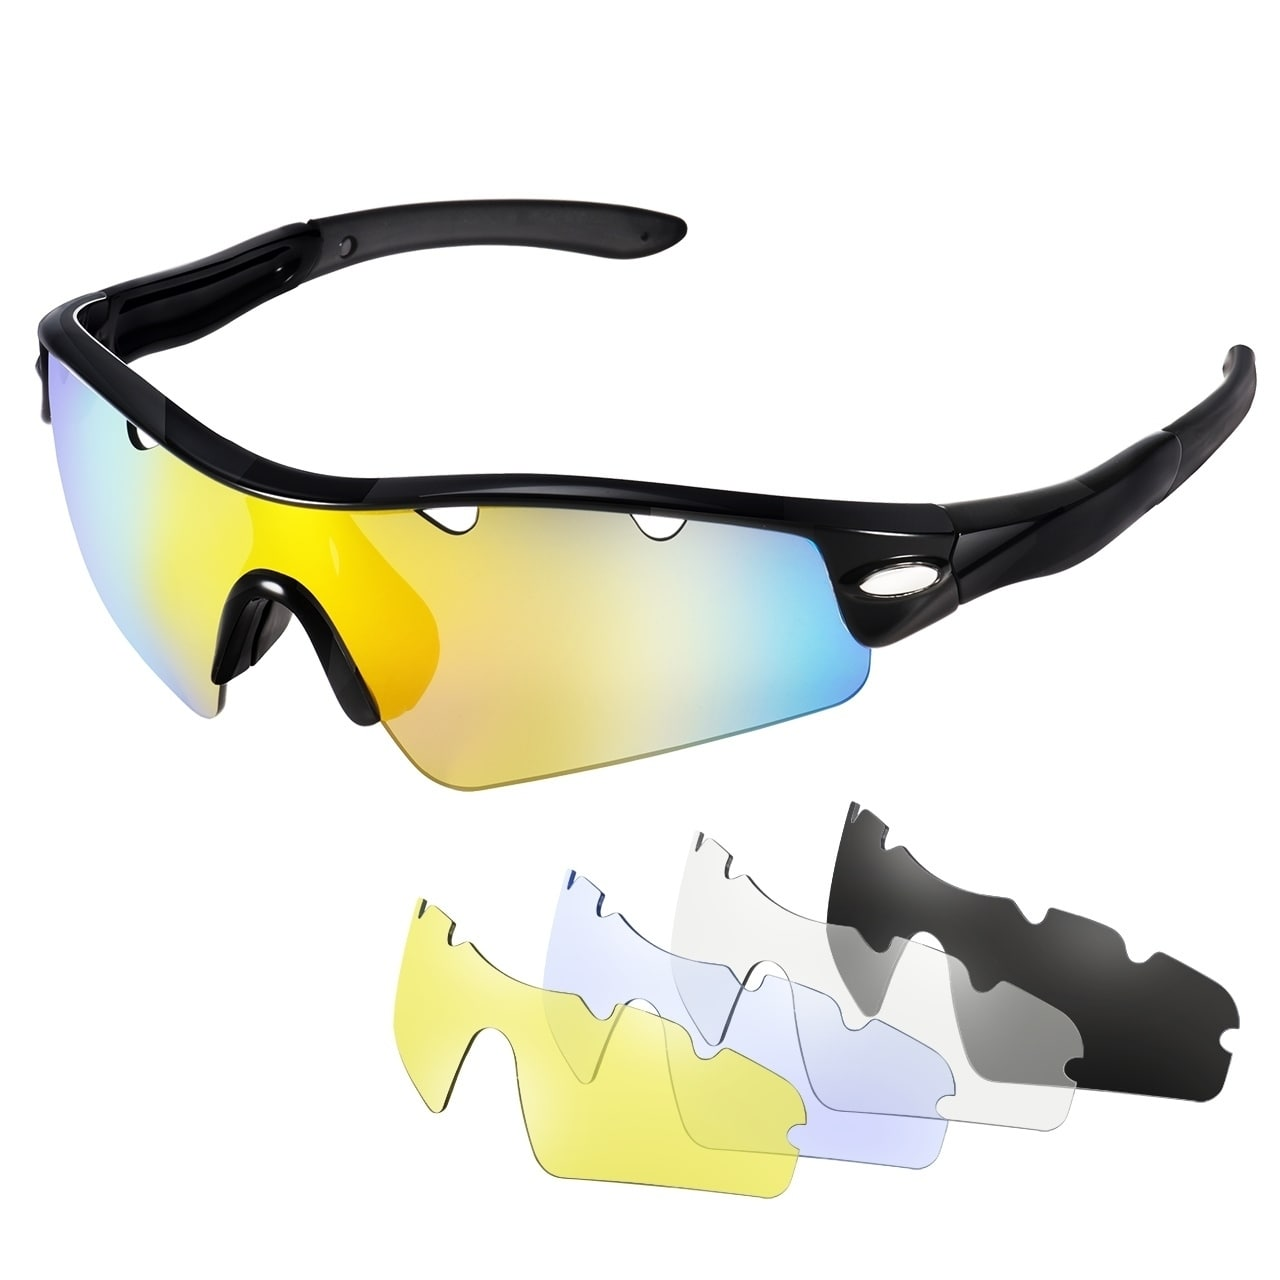 Cycling sunglass with 5 interchangeable lenses 1